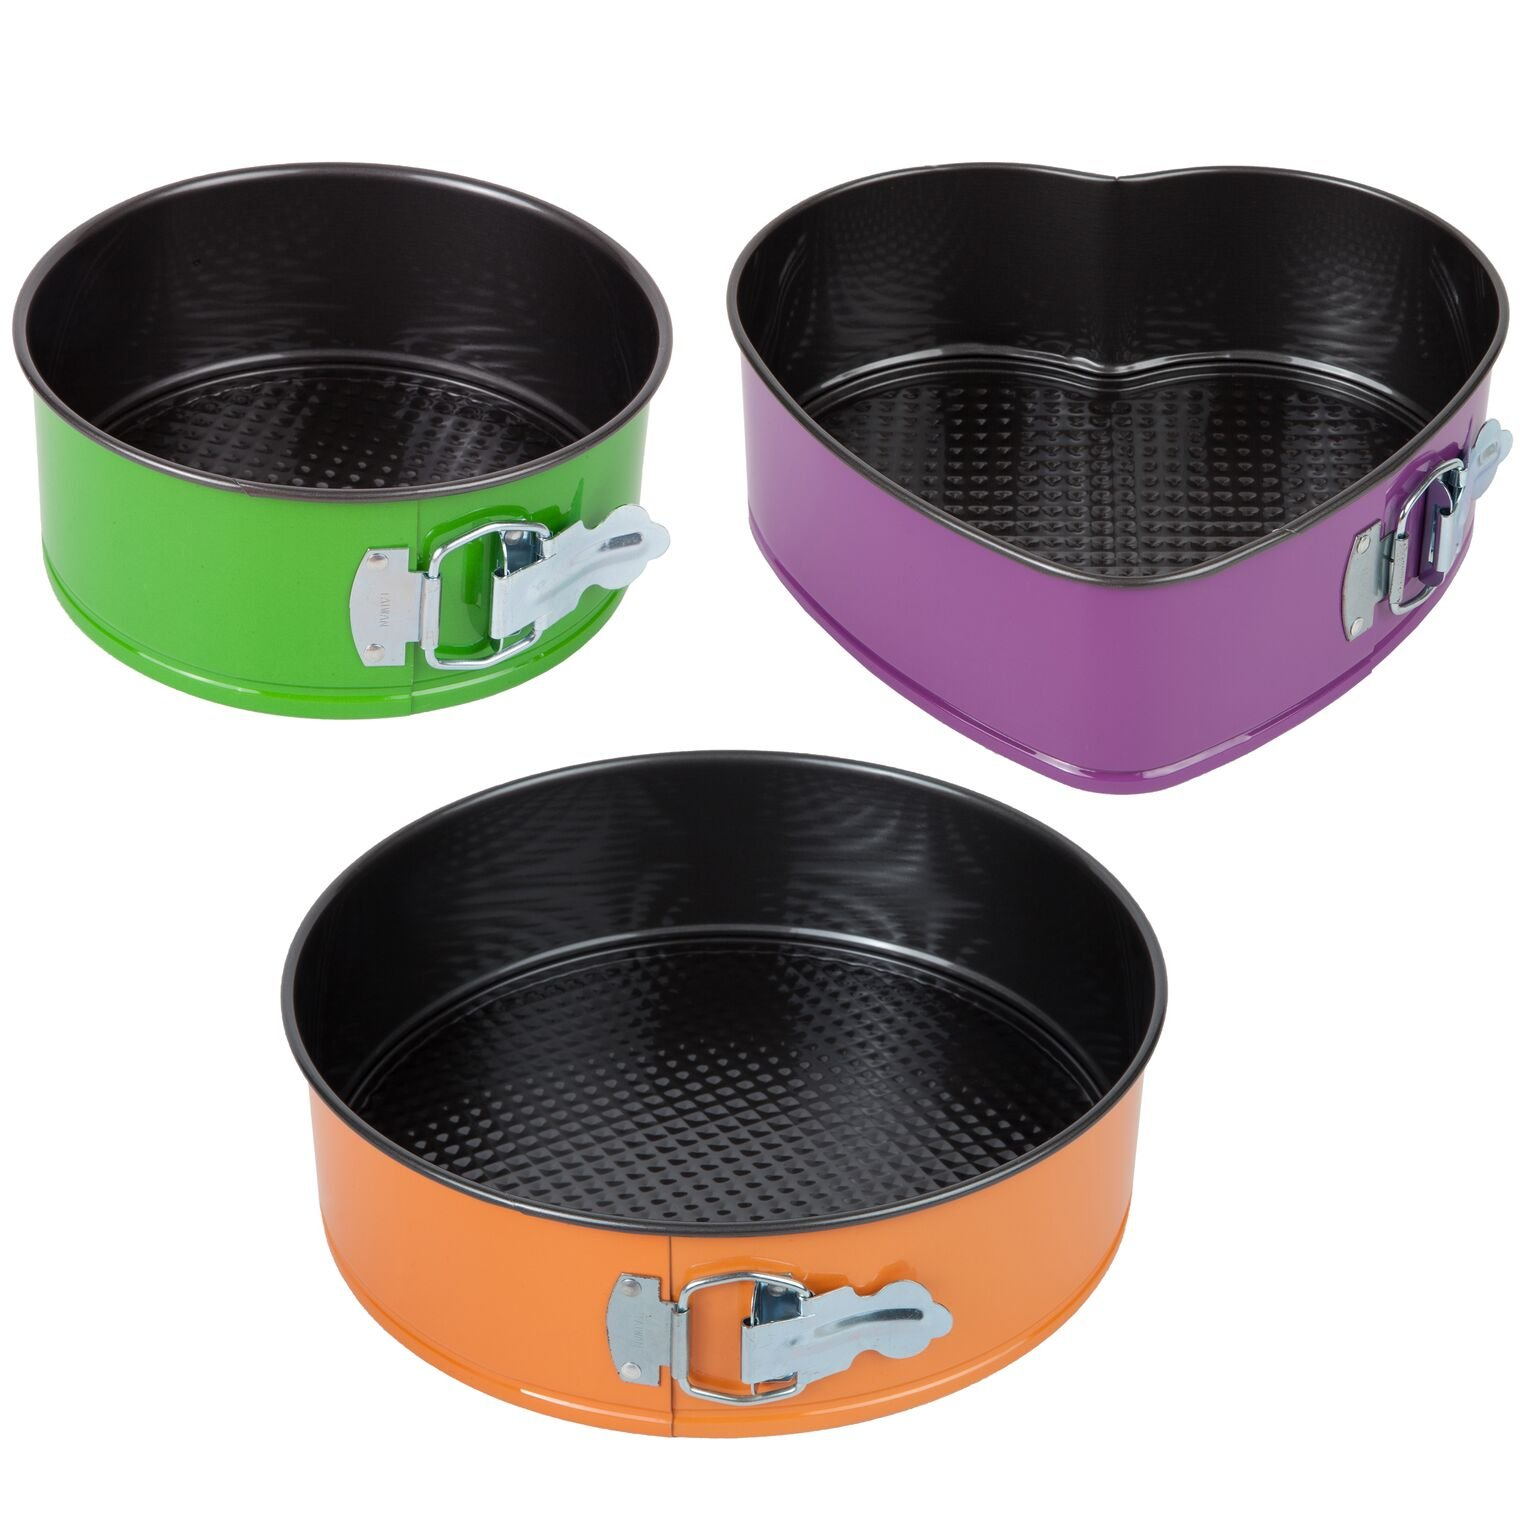 Trenton Gifts Set of 3 Springform Pans with 2 Round and 1 Heart Shaped by TRENTON (Image #1)